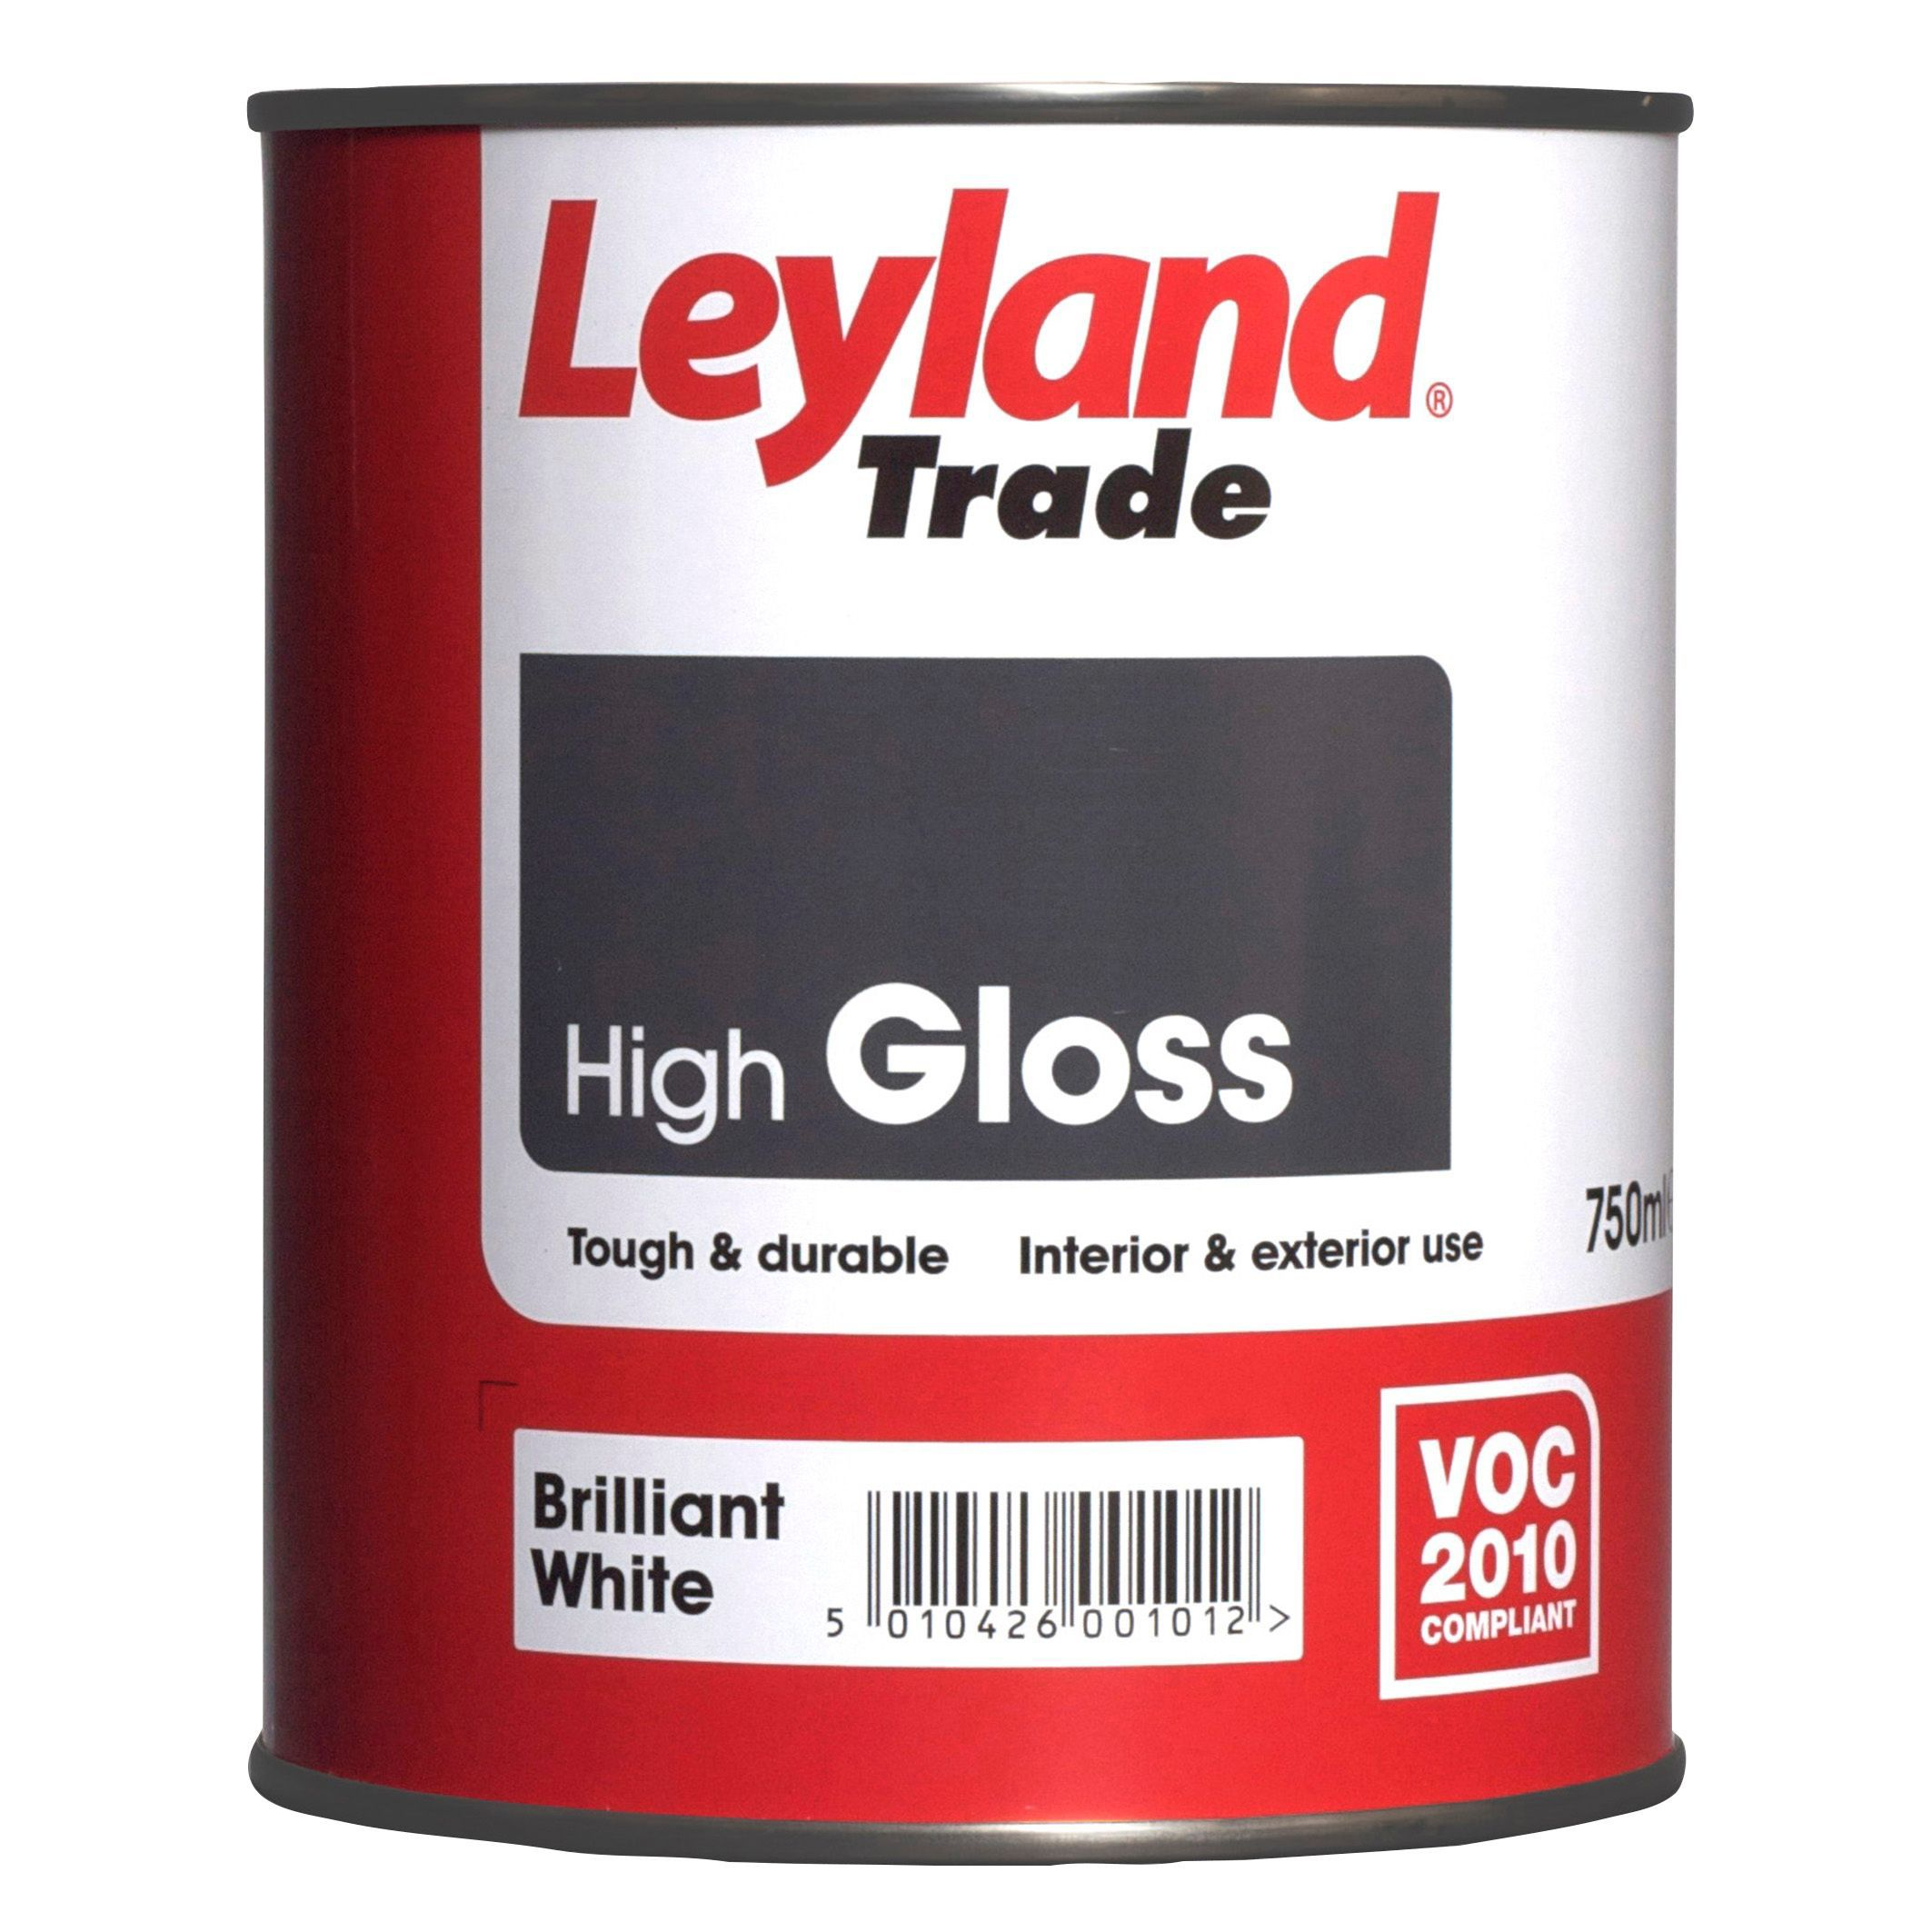 Leyland trade interior exterior brilliant white gloss wood metal paint 750ml departments - Exterior white gloss paint image ...